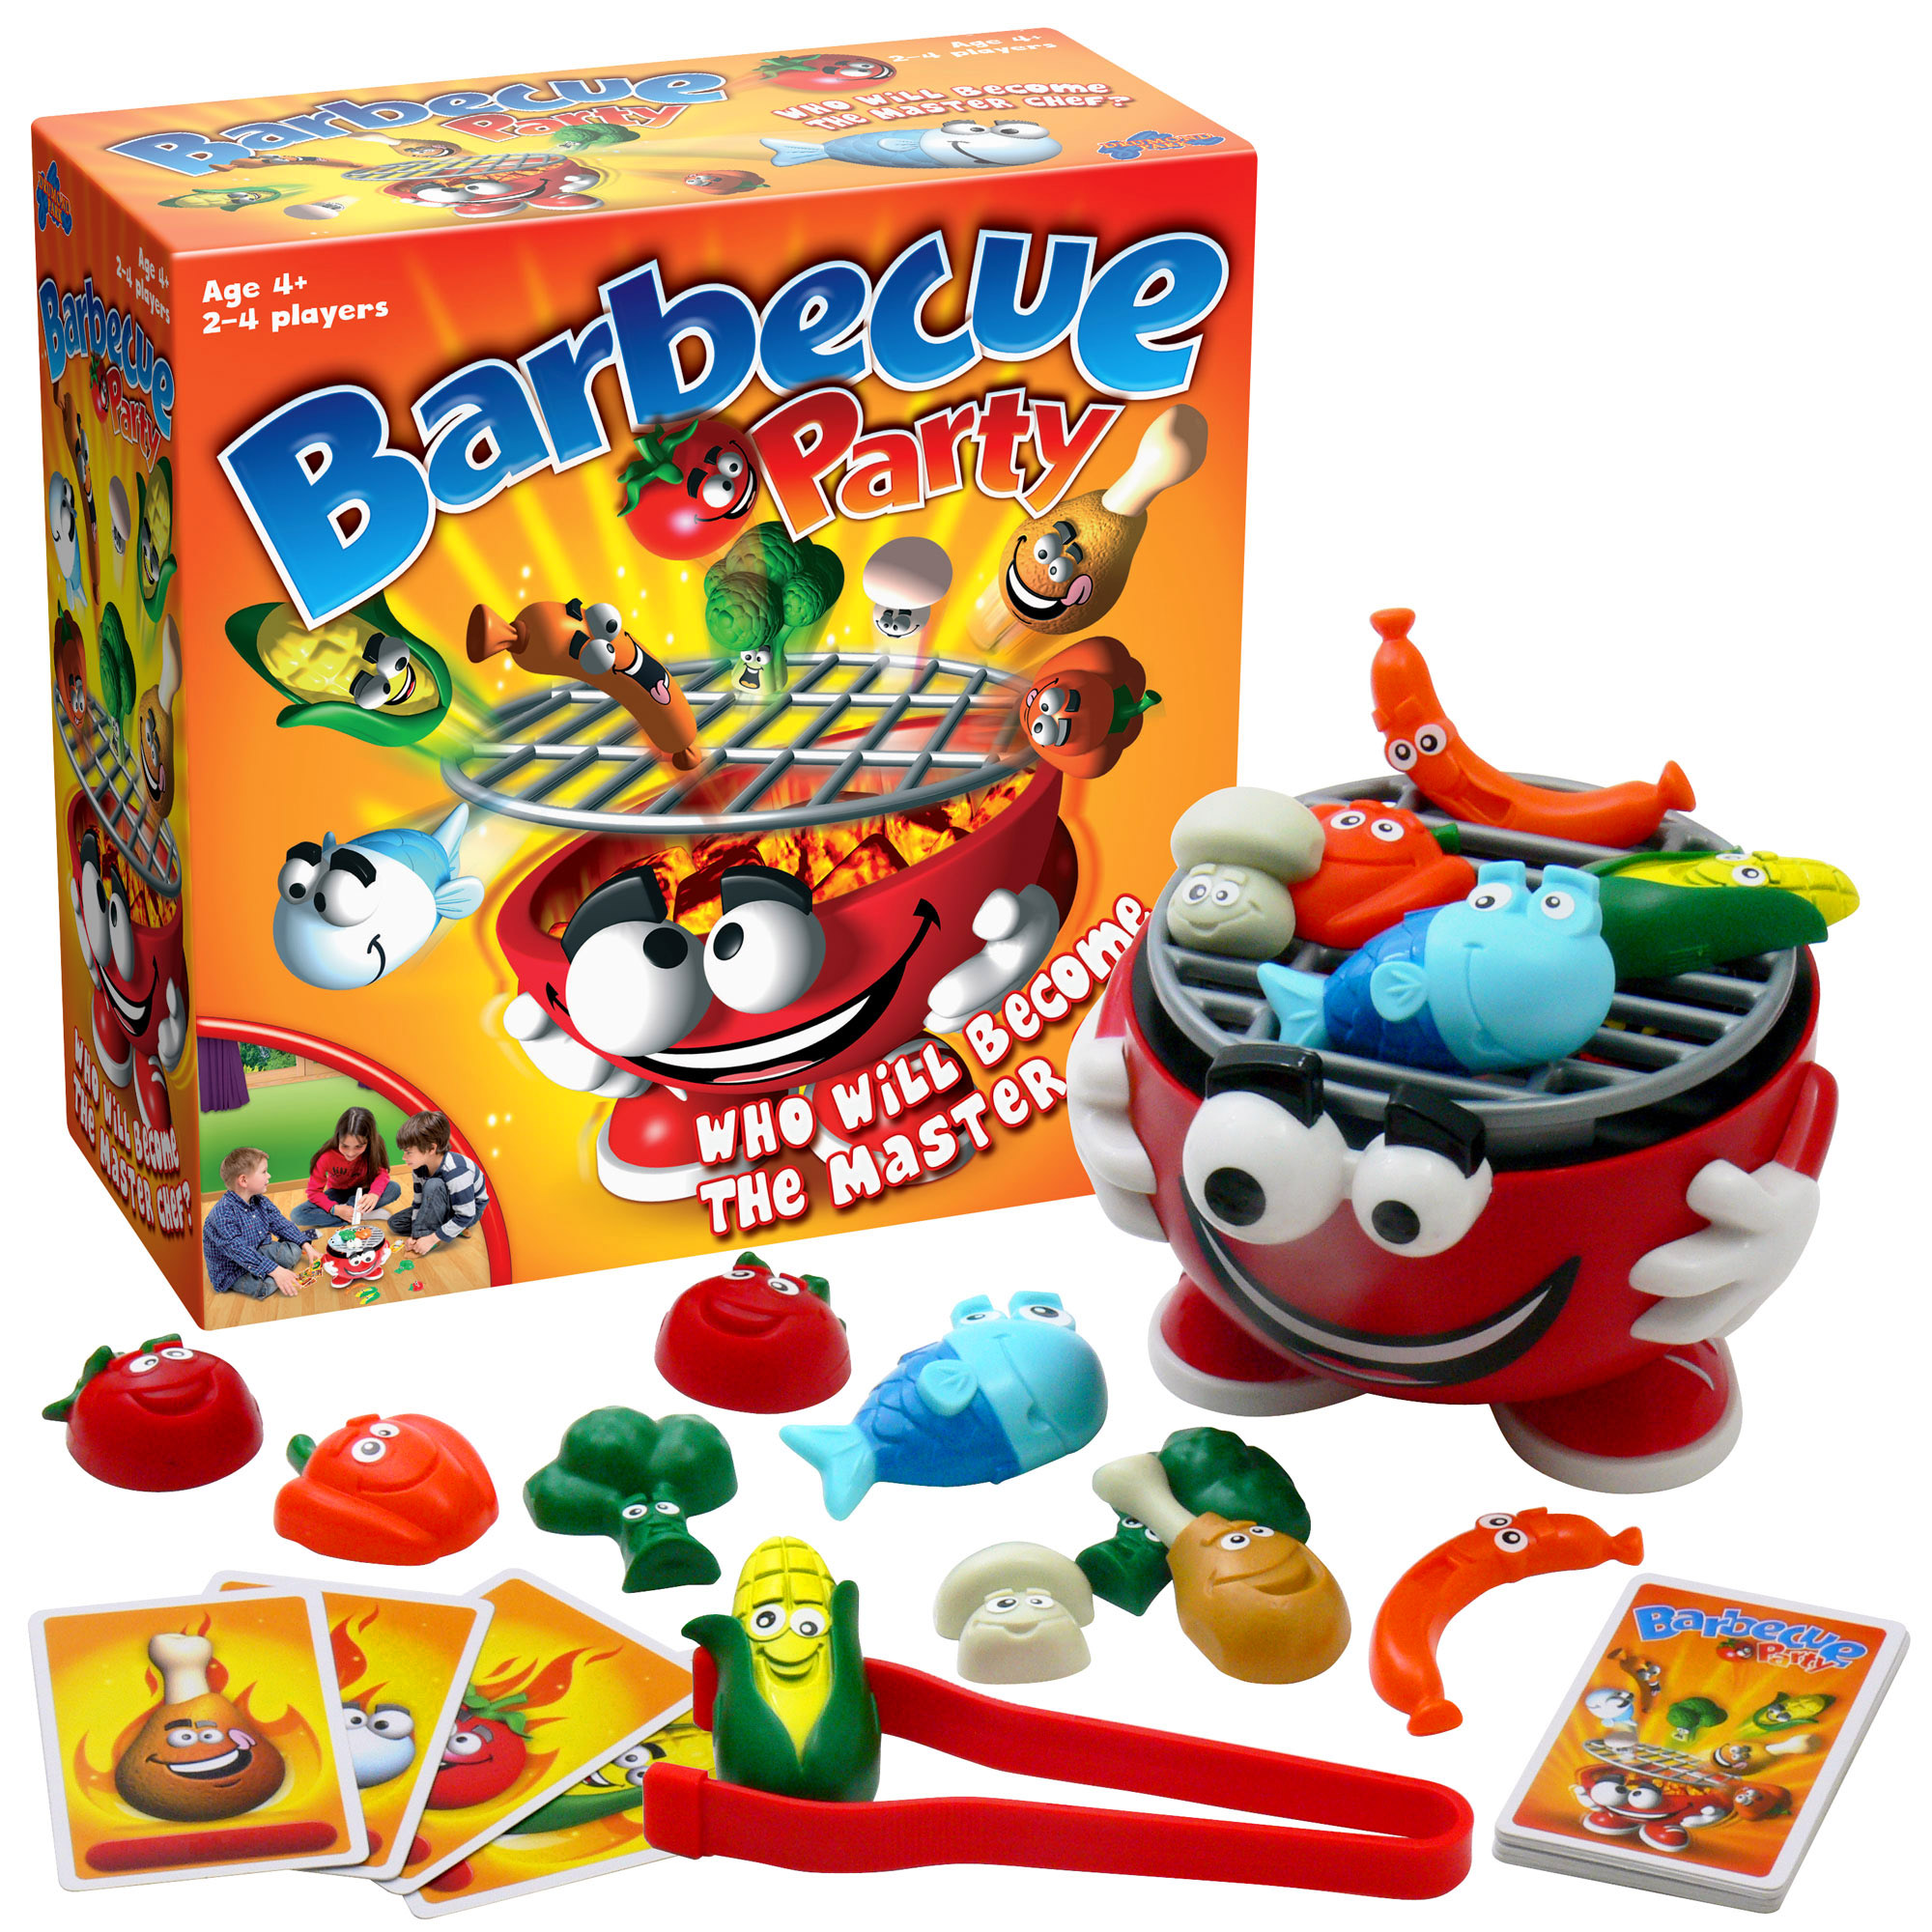 Barbecue Party board game; review and giveaway